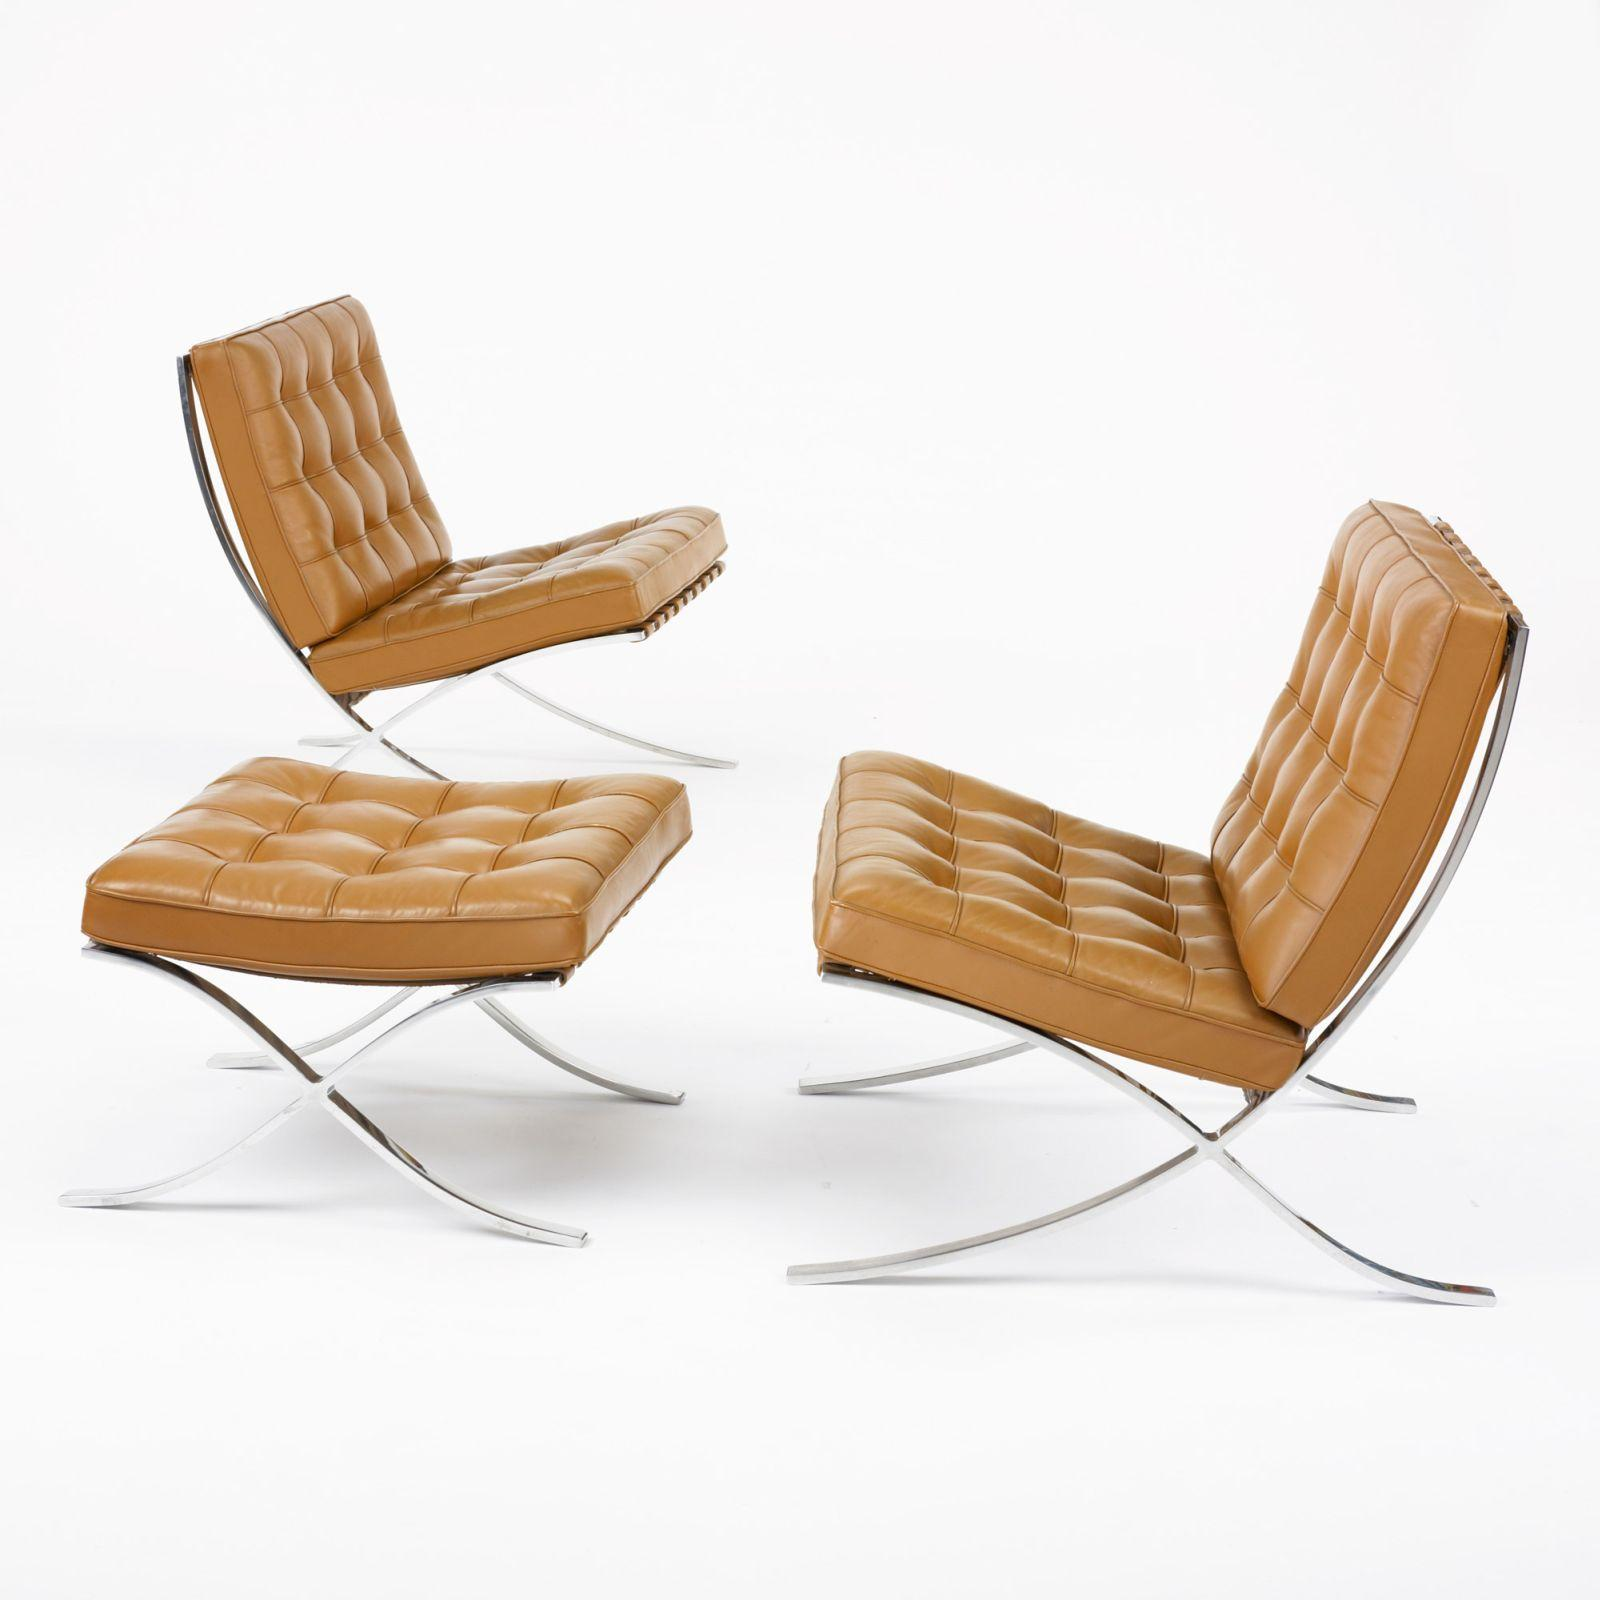 Ludwig Mies van der Rohe pair of Barcelona chairs with ottoman